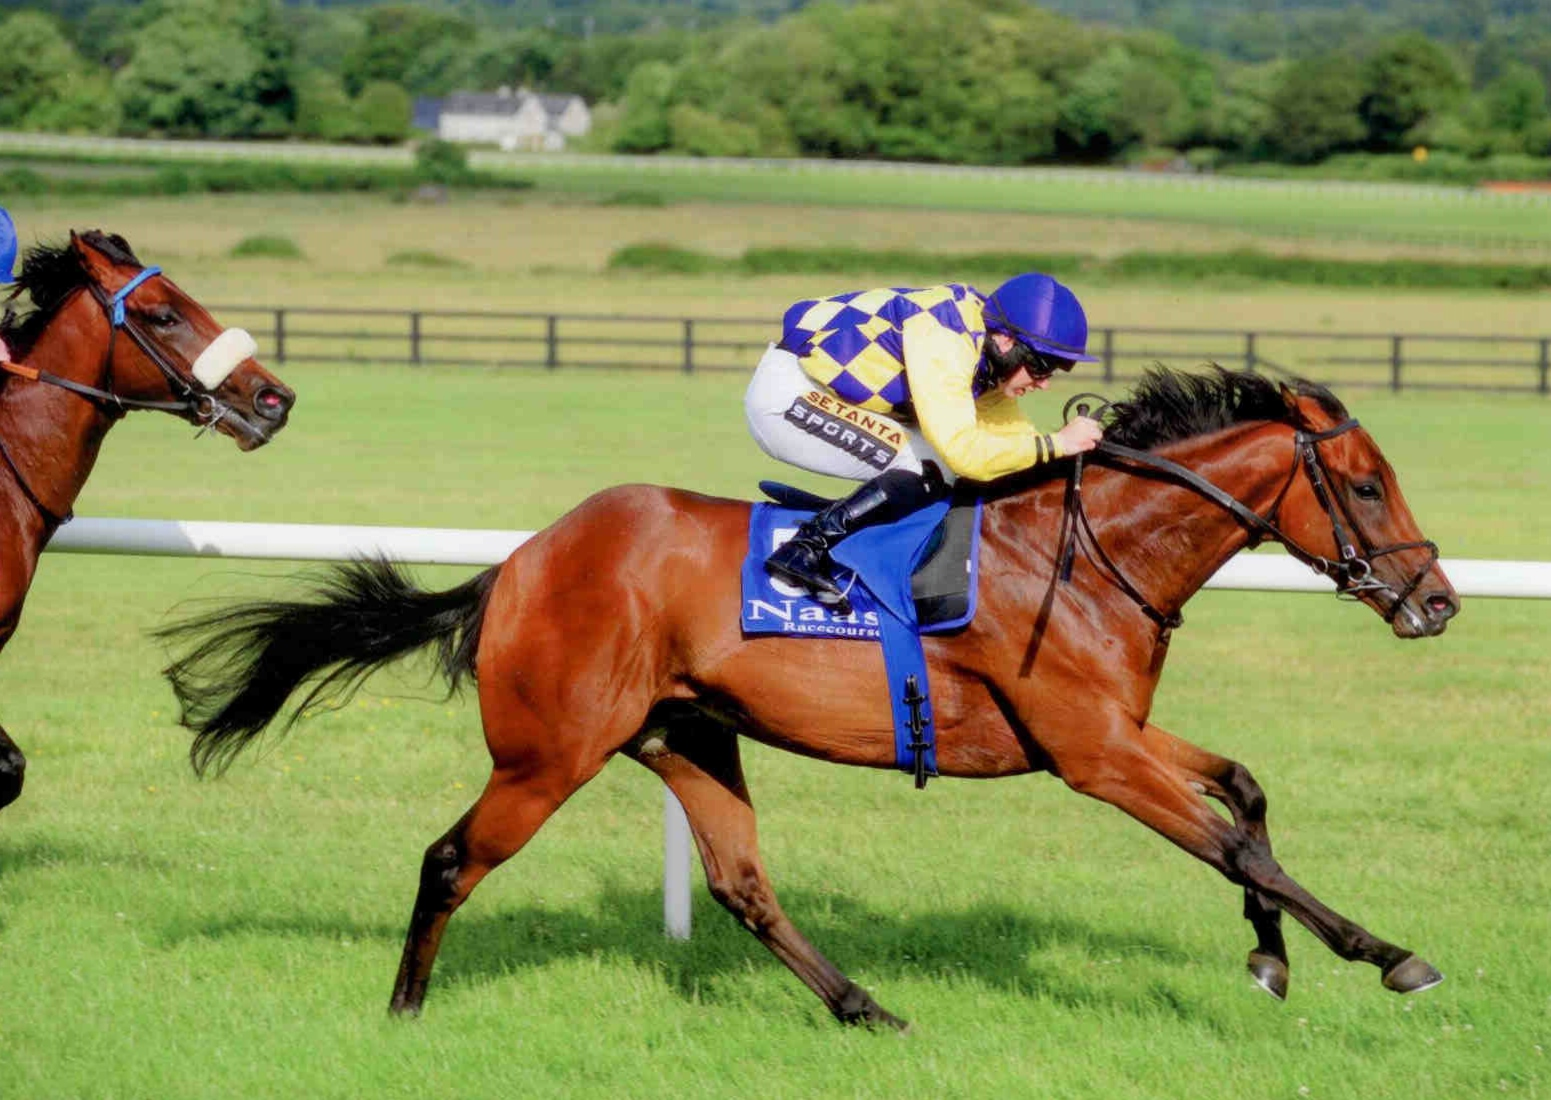 RECKLESS ENDEAVOUR breaks his maiden at Naas on July 8th, 2015